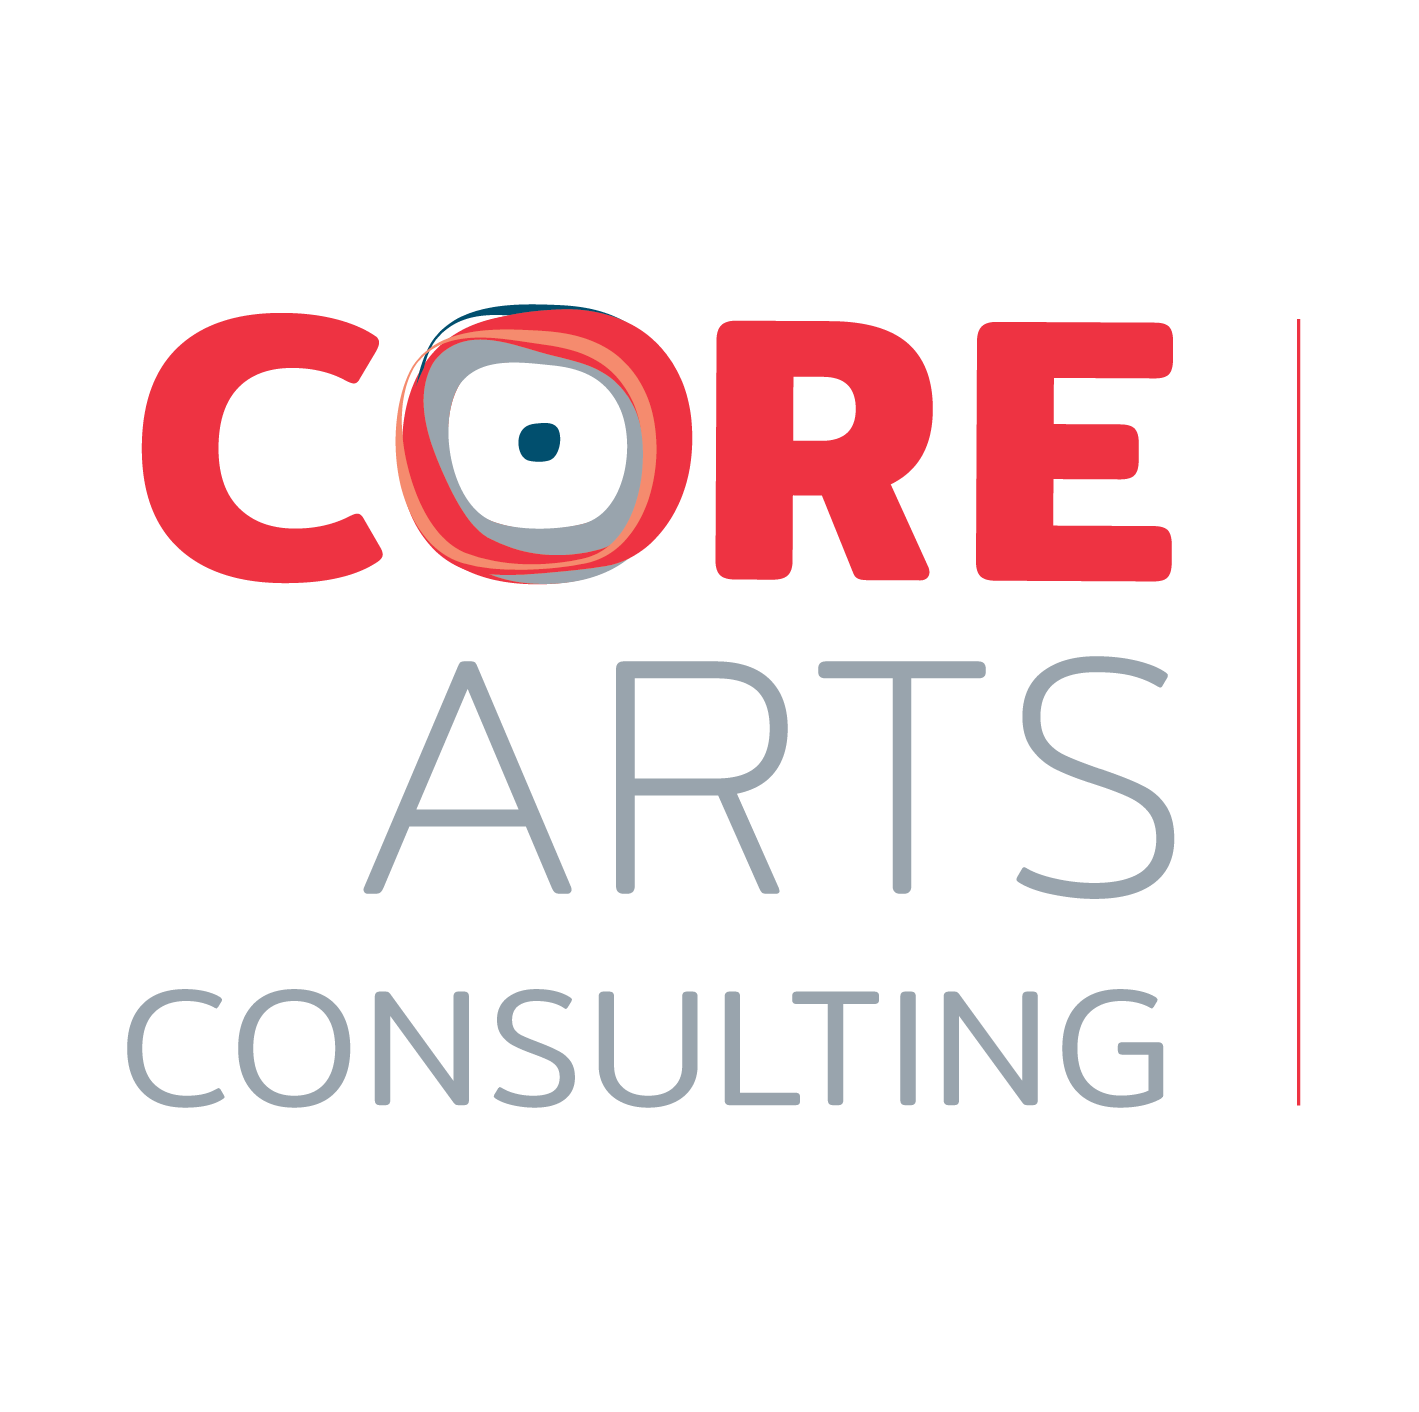 CORE Arts Consulting